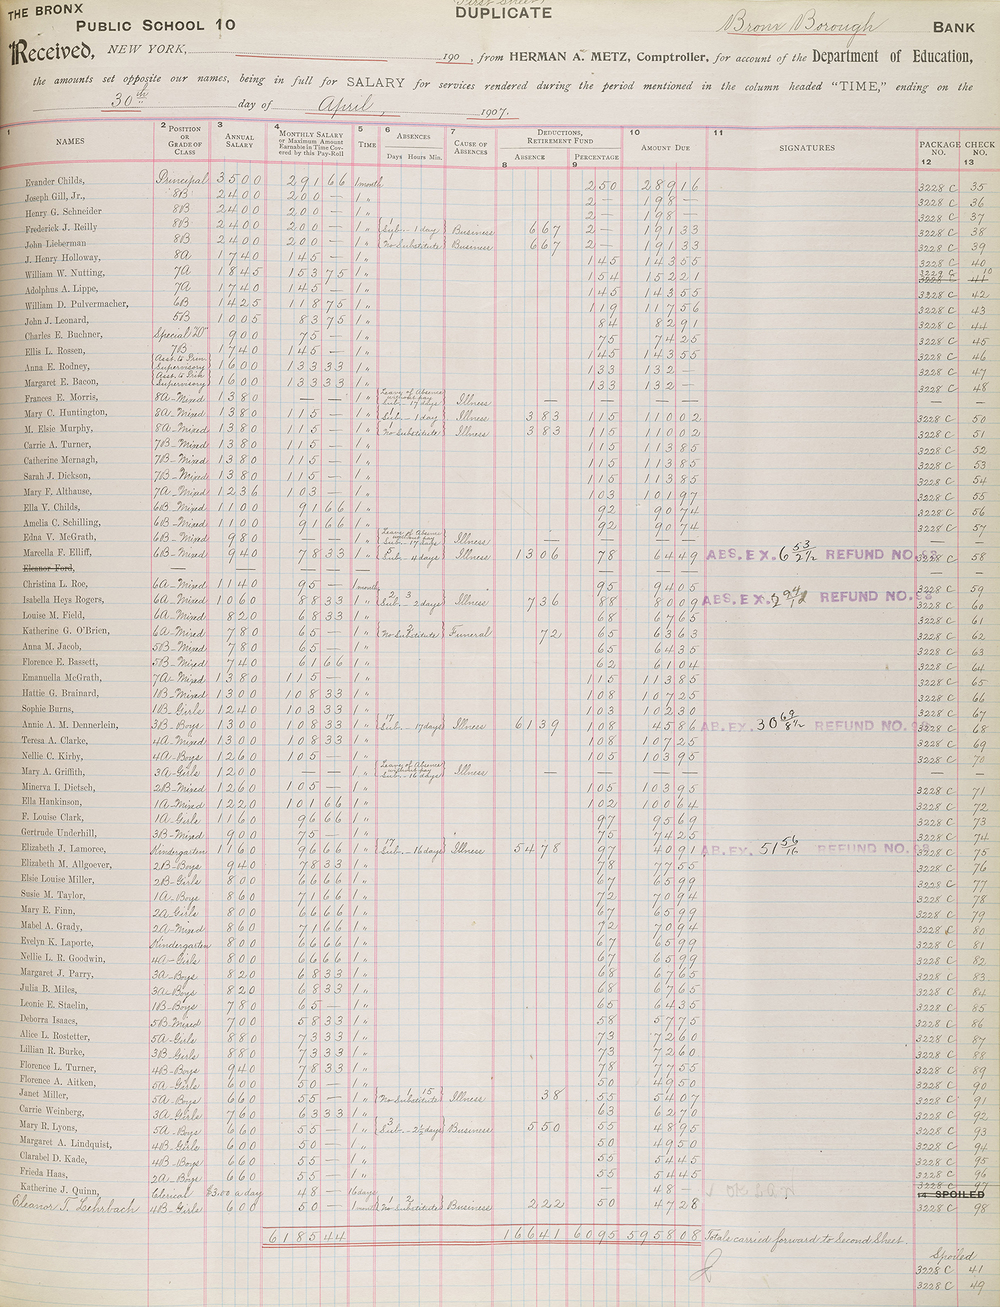 A 1907 ledger from PS 10 in the Bronx shows the salaries paid to teachers of different grades.  12 of the 67 teachers  are male and all are assigned to 7th and 8th grades; the  55 women teachers educate the primary grades.